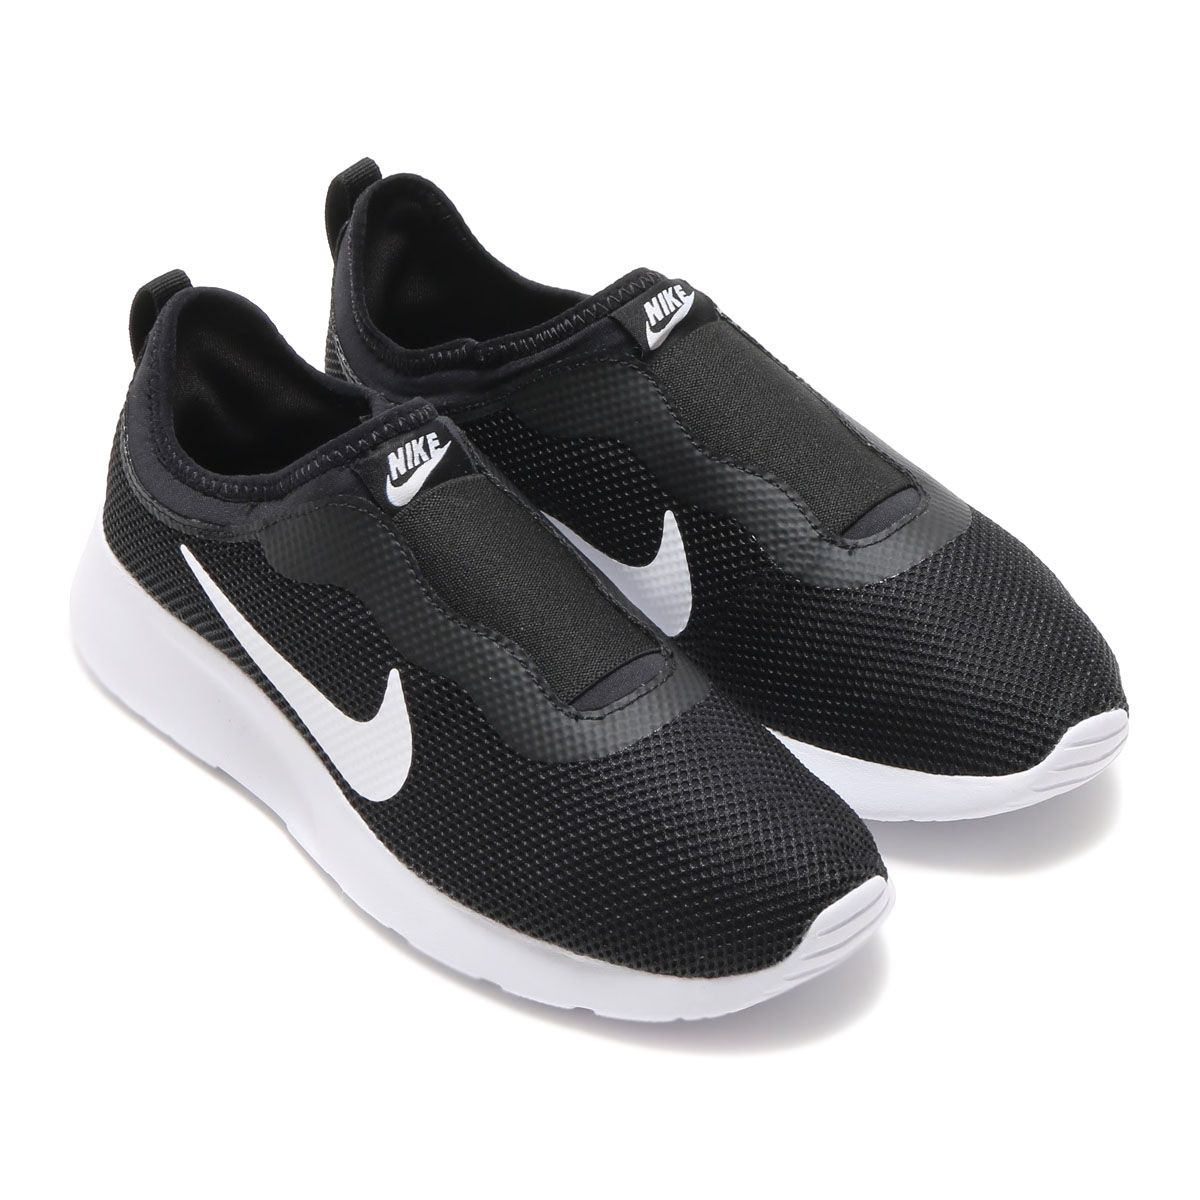 NIKEWMNSTANJUNSLIP (Nike Women's Tanjung Slip) BLACK / WHITE [Men's Women's  Sneakers] 17SU